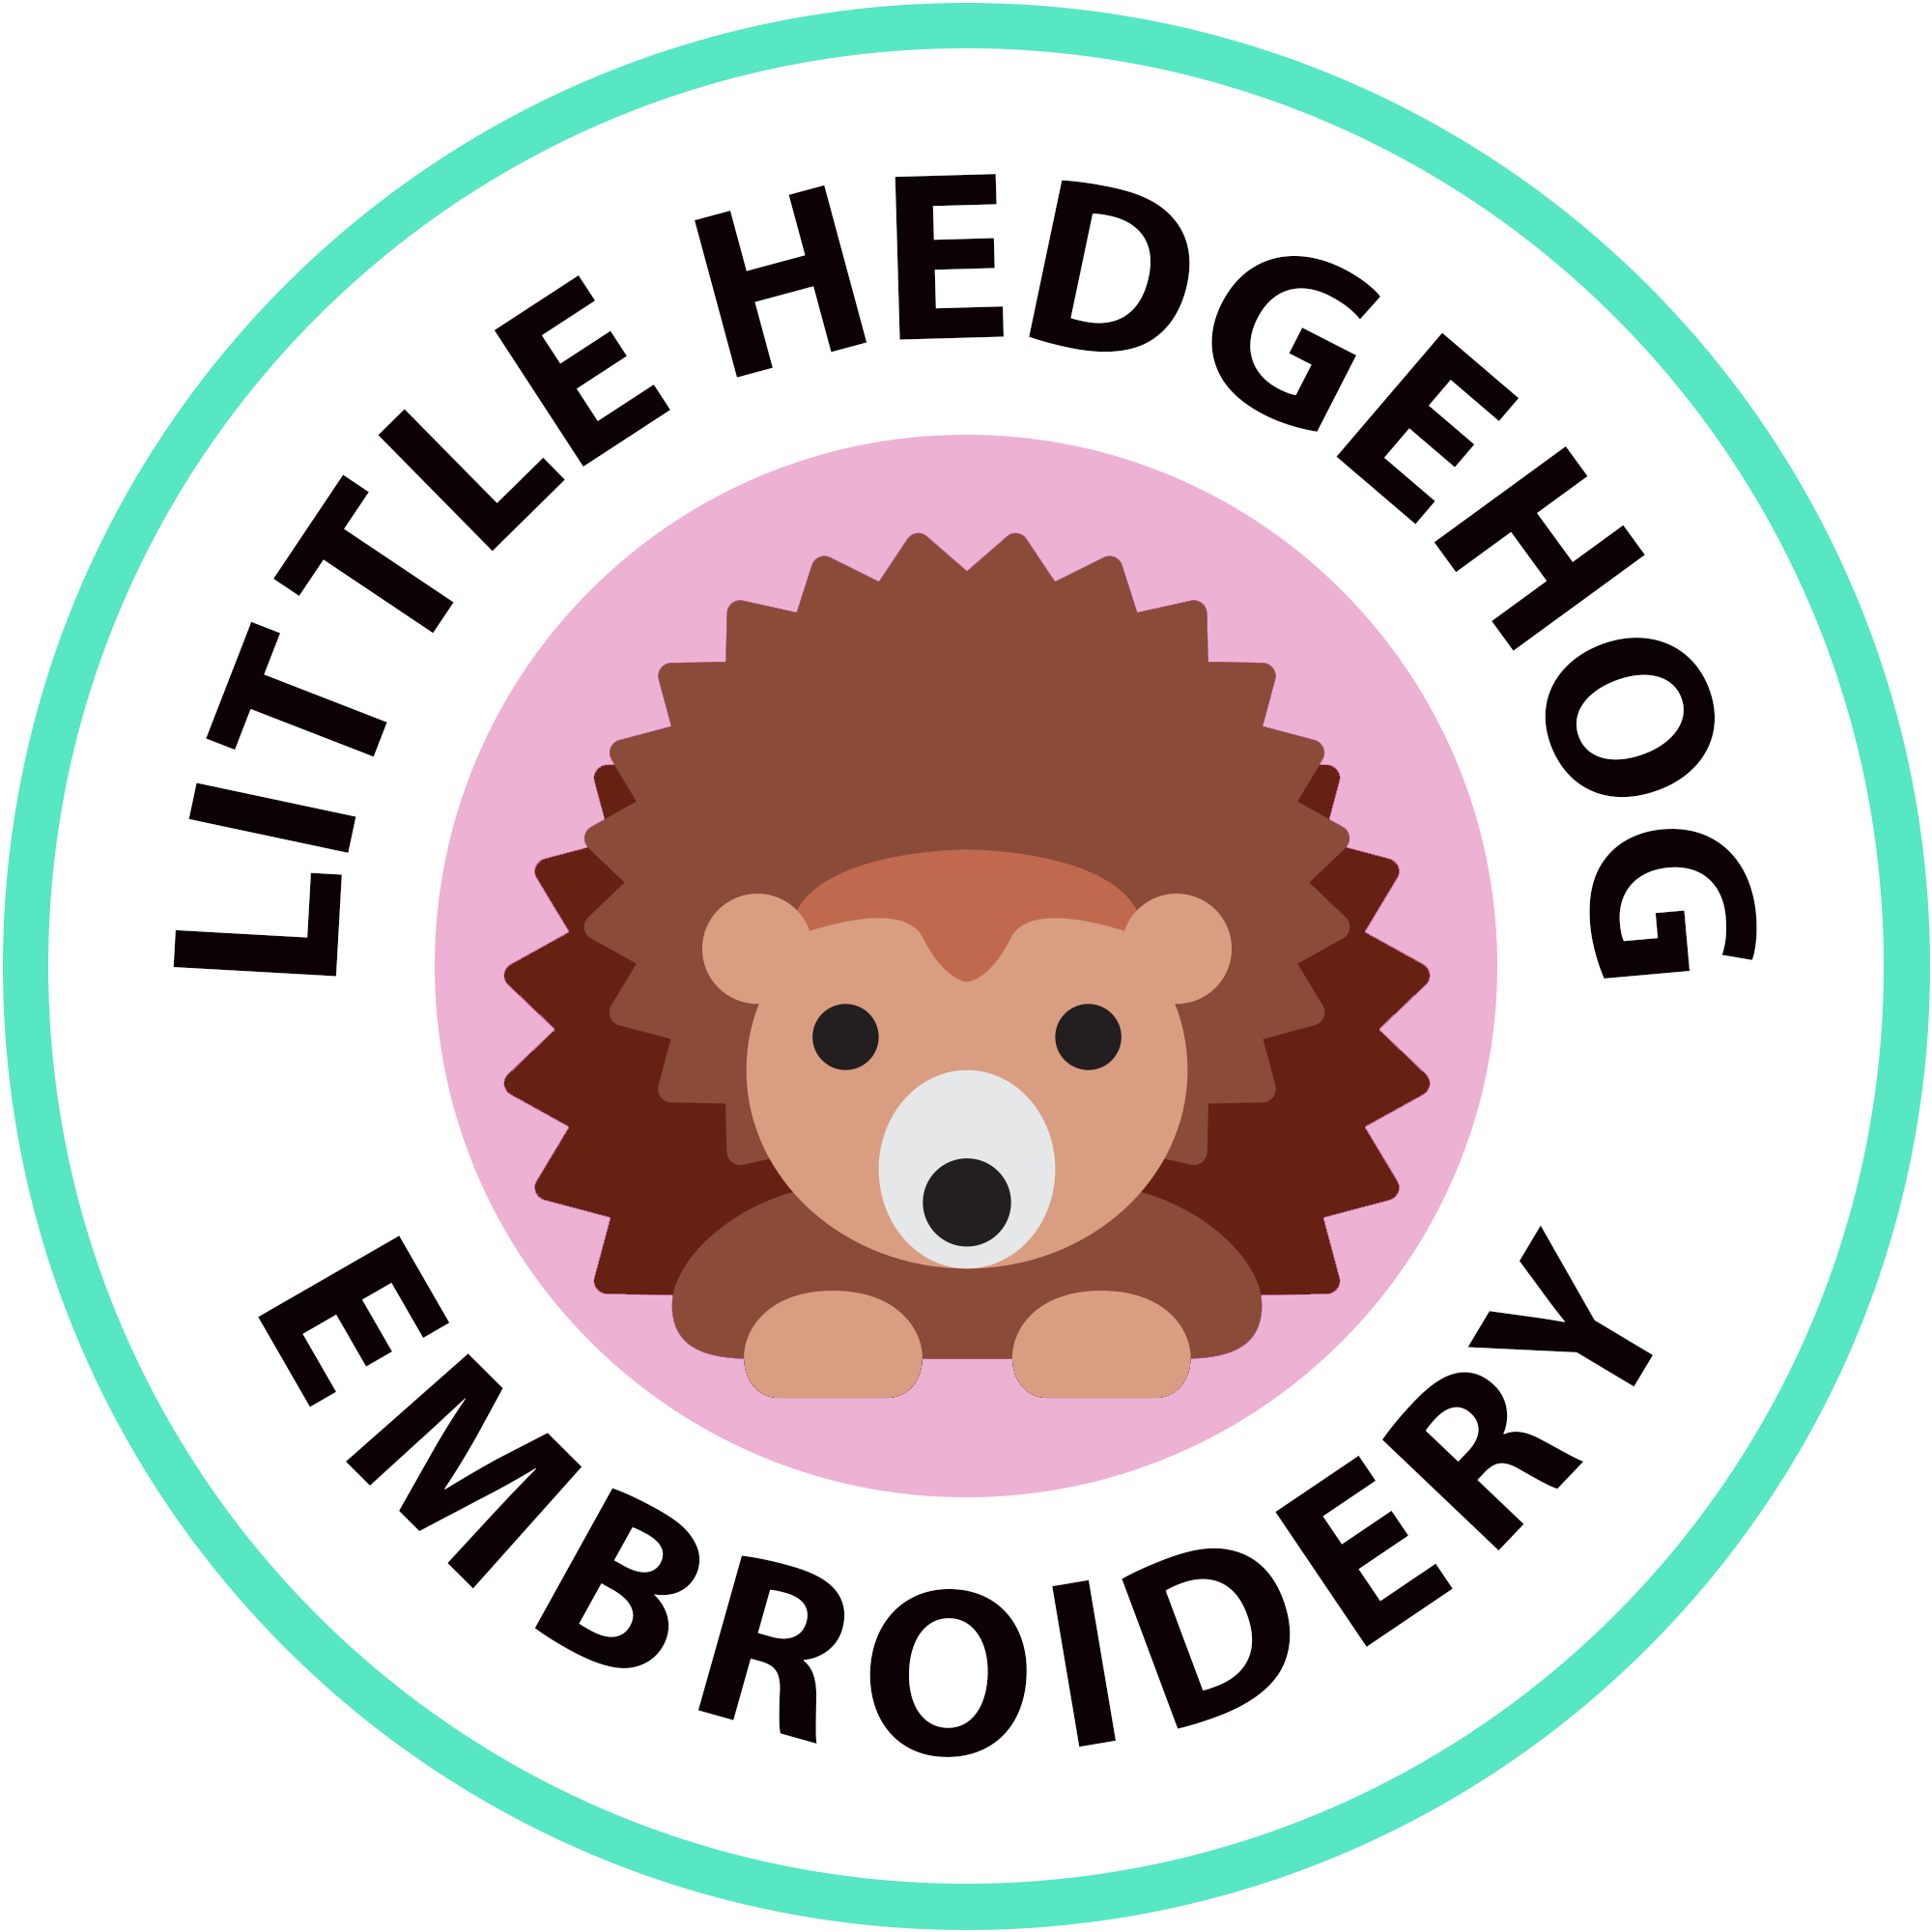 Little Hedgehog Embroidery